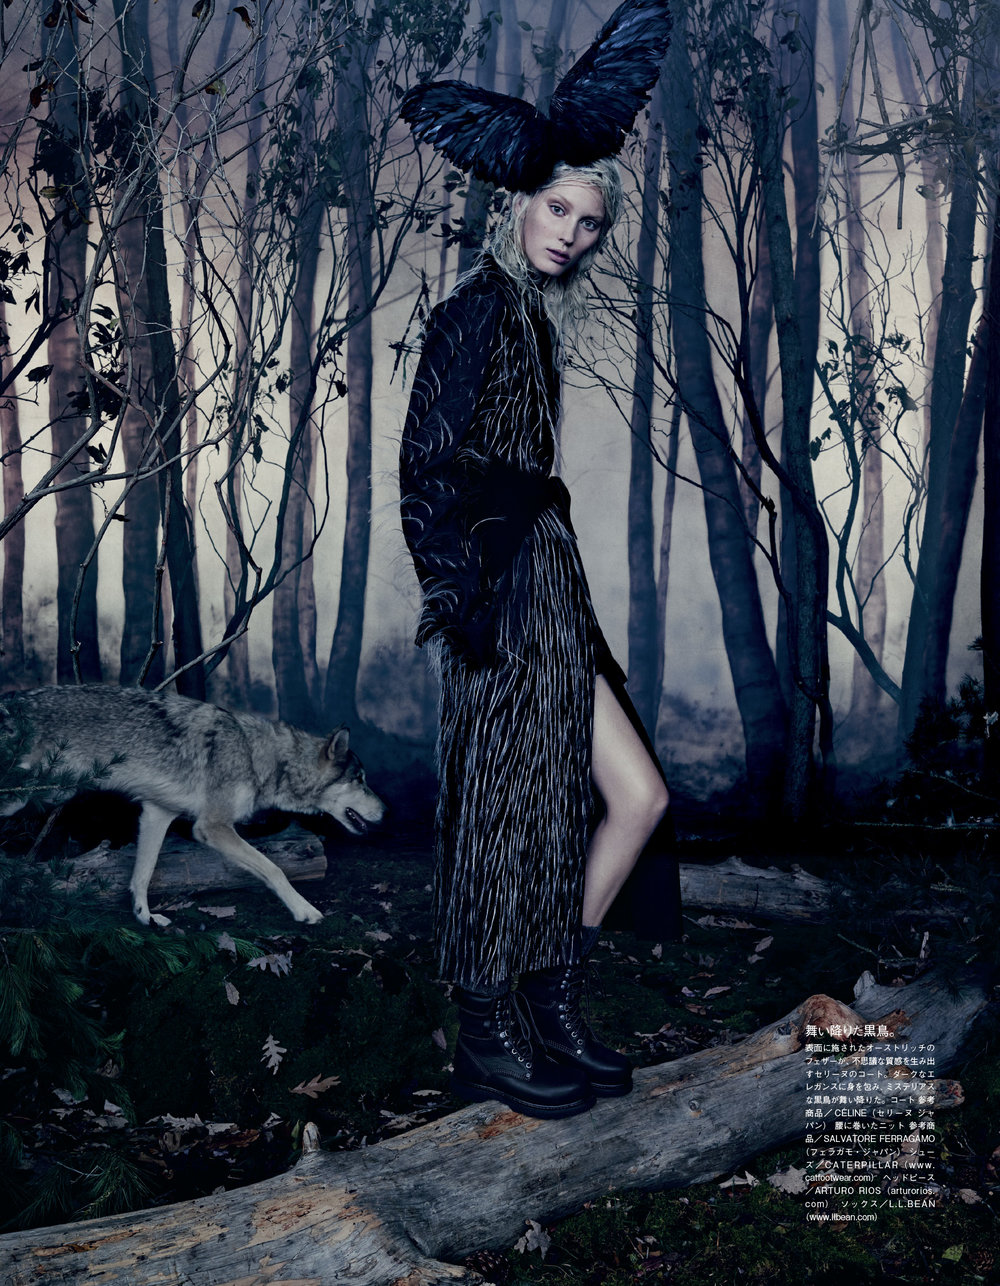 Giovanna-Battaglia-Into-The-Woods-Vogue-Japan-Emma-Summerton-04.jpg